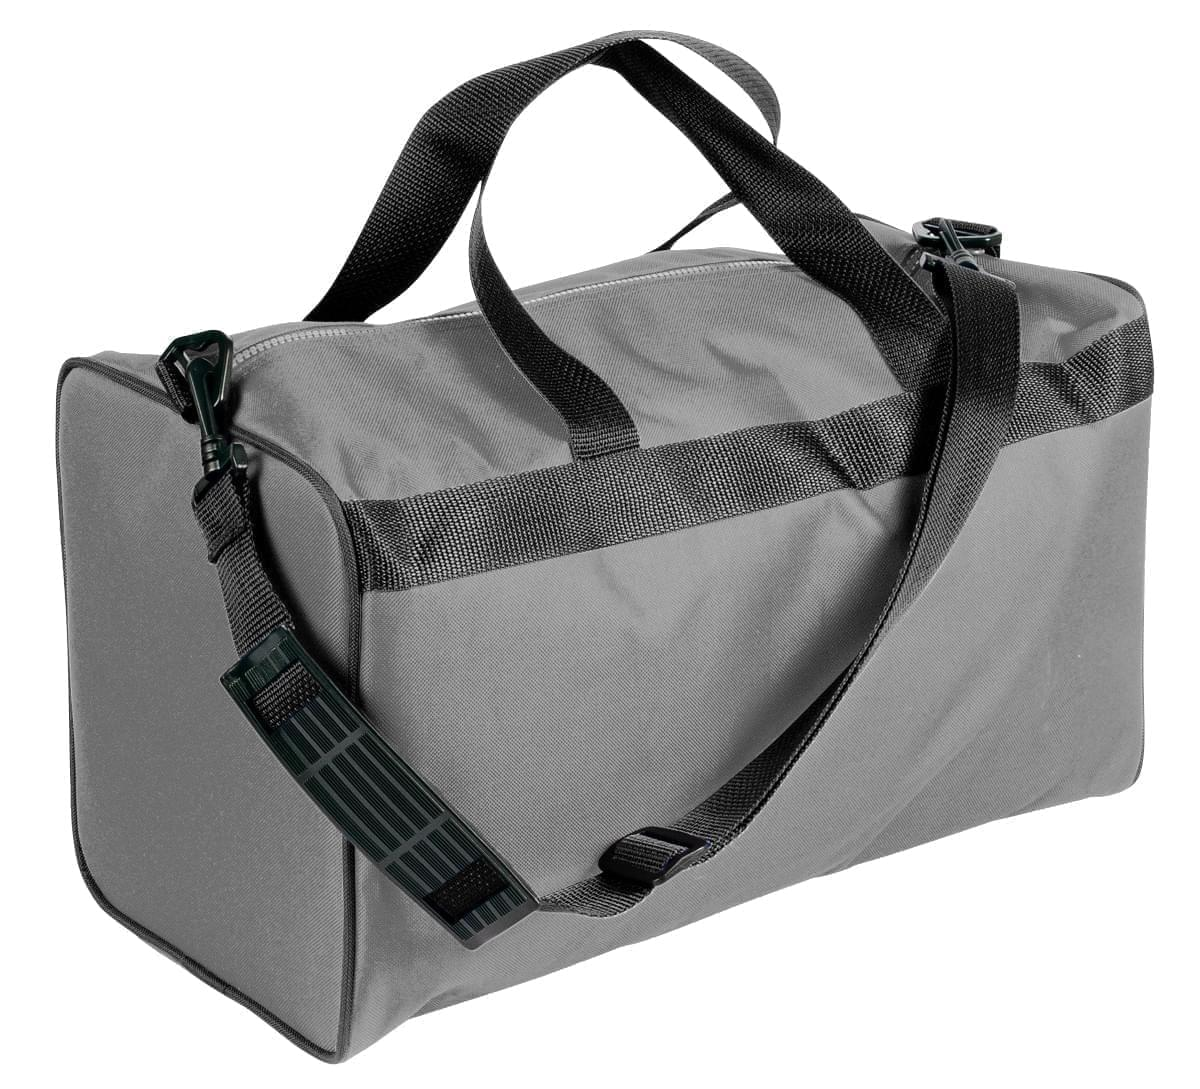 USA Made Nylon Poly Weekend Duffles, Grey-Black, WLKX31AA1R